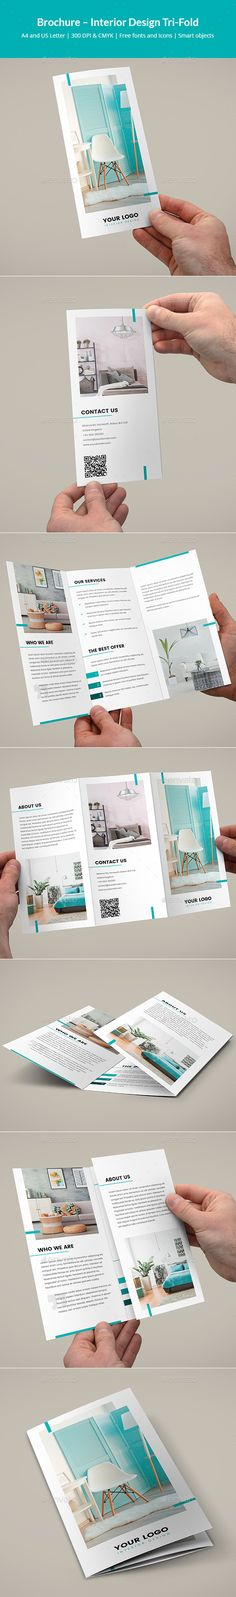 Brochure – Interior #Design Tri-Fold - Corporate #Brochures Download here: https://graphicriver.net/item/brochure-interior-design-trifold/19513276?ref=alena994